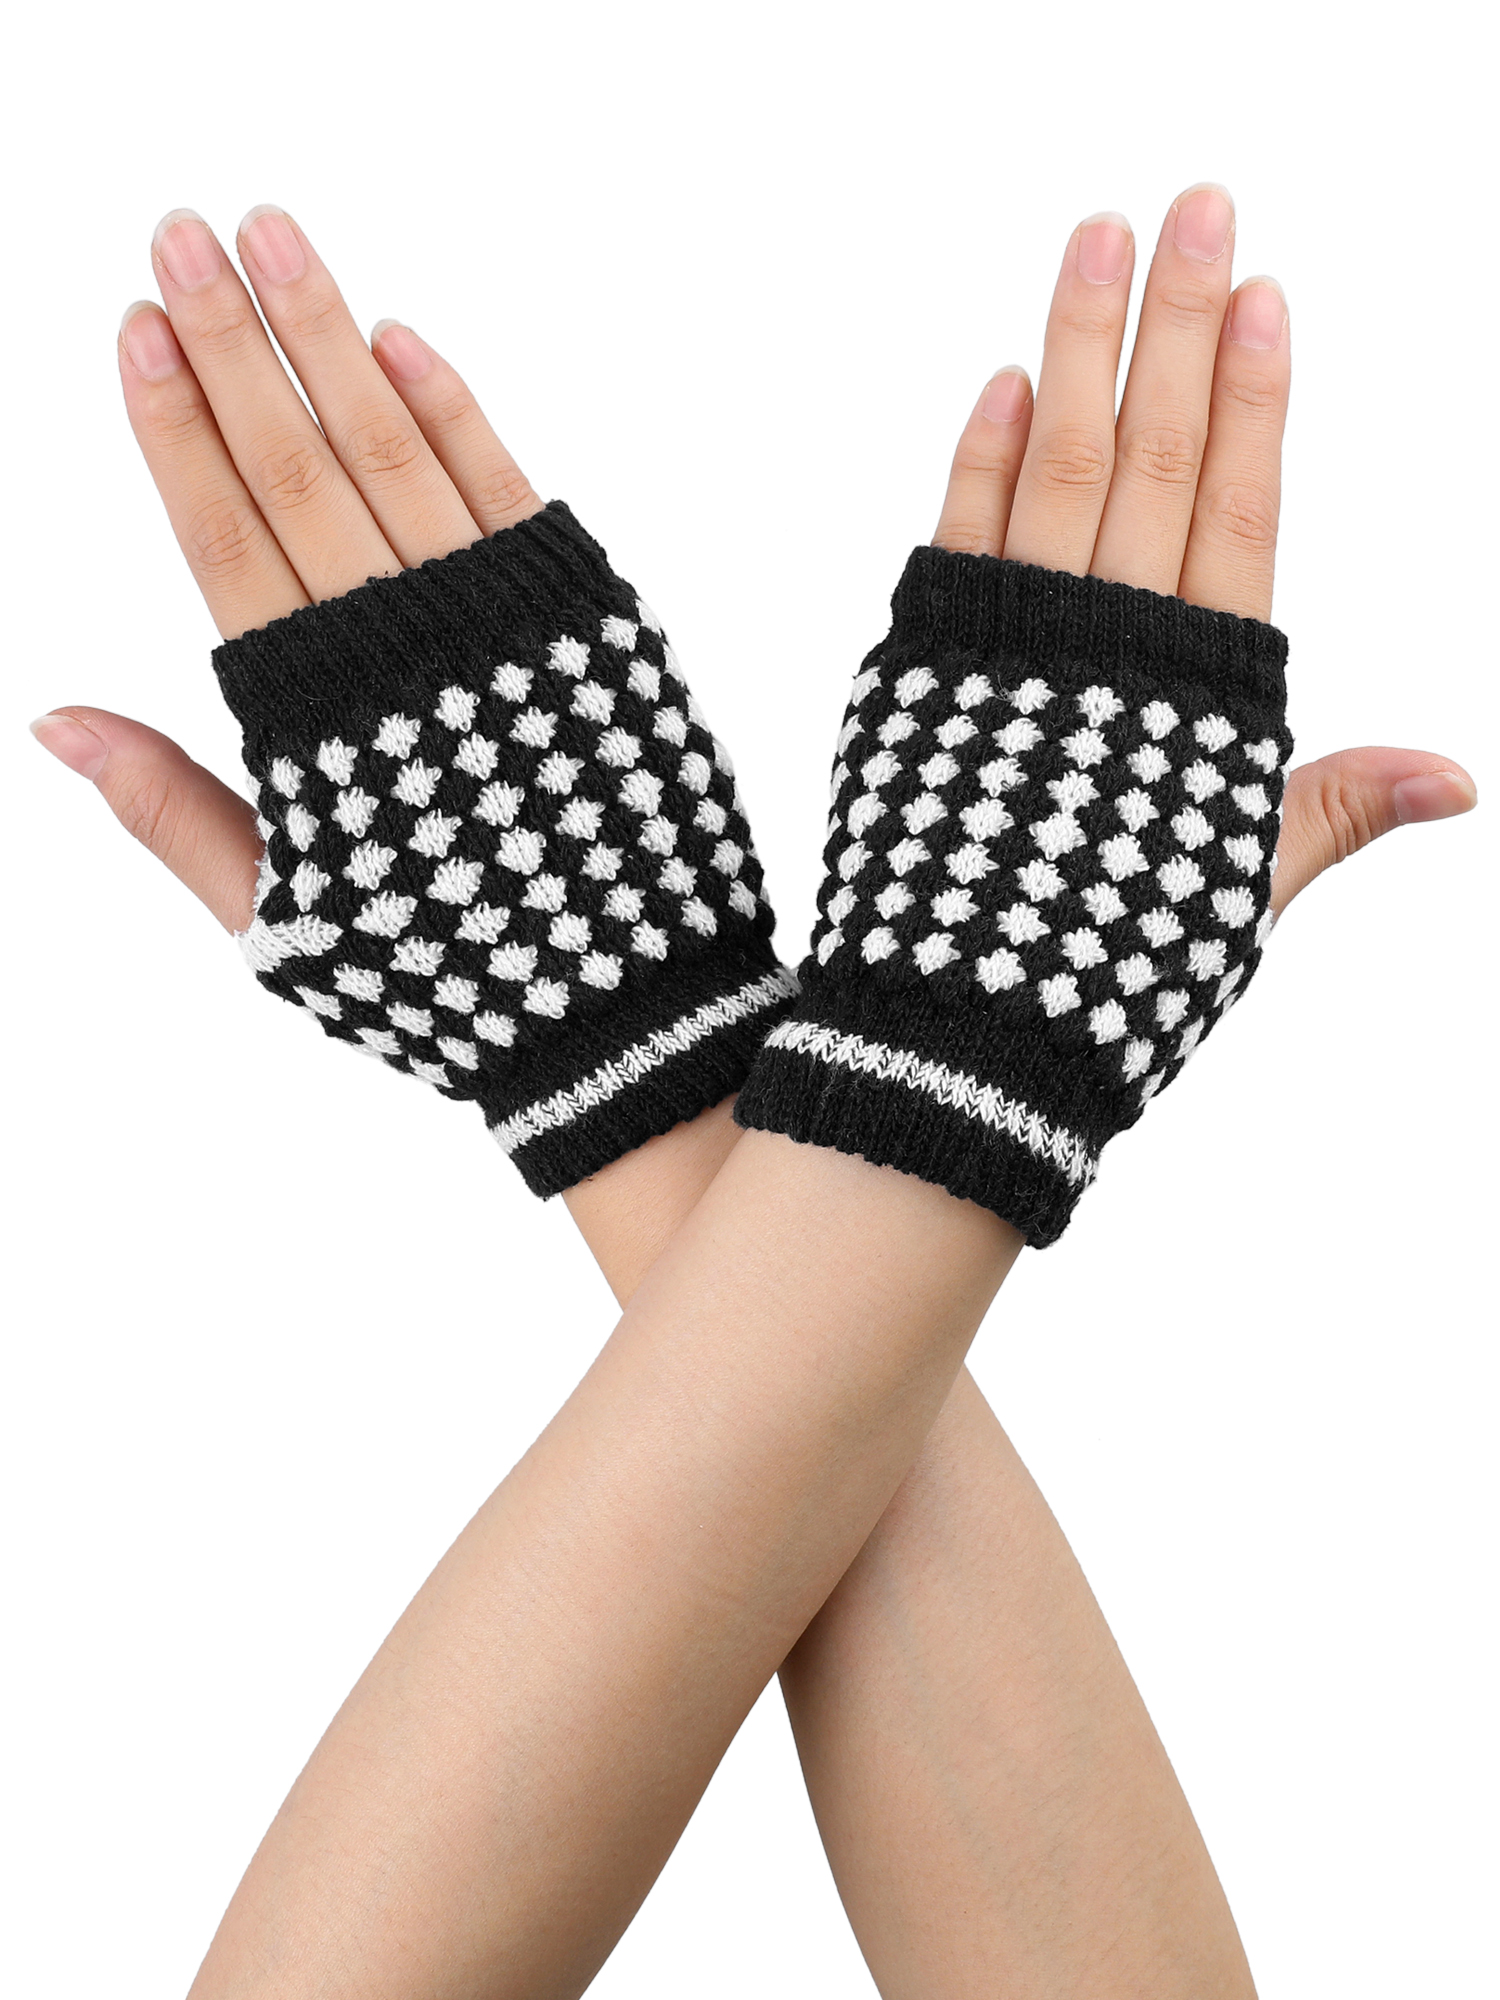 Women Black White Stretchy Thumb Hole Knit Fingerless Gloves Pair